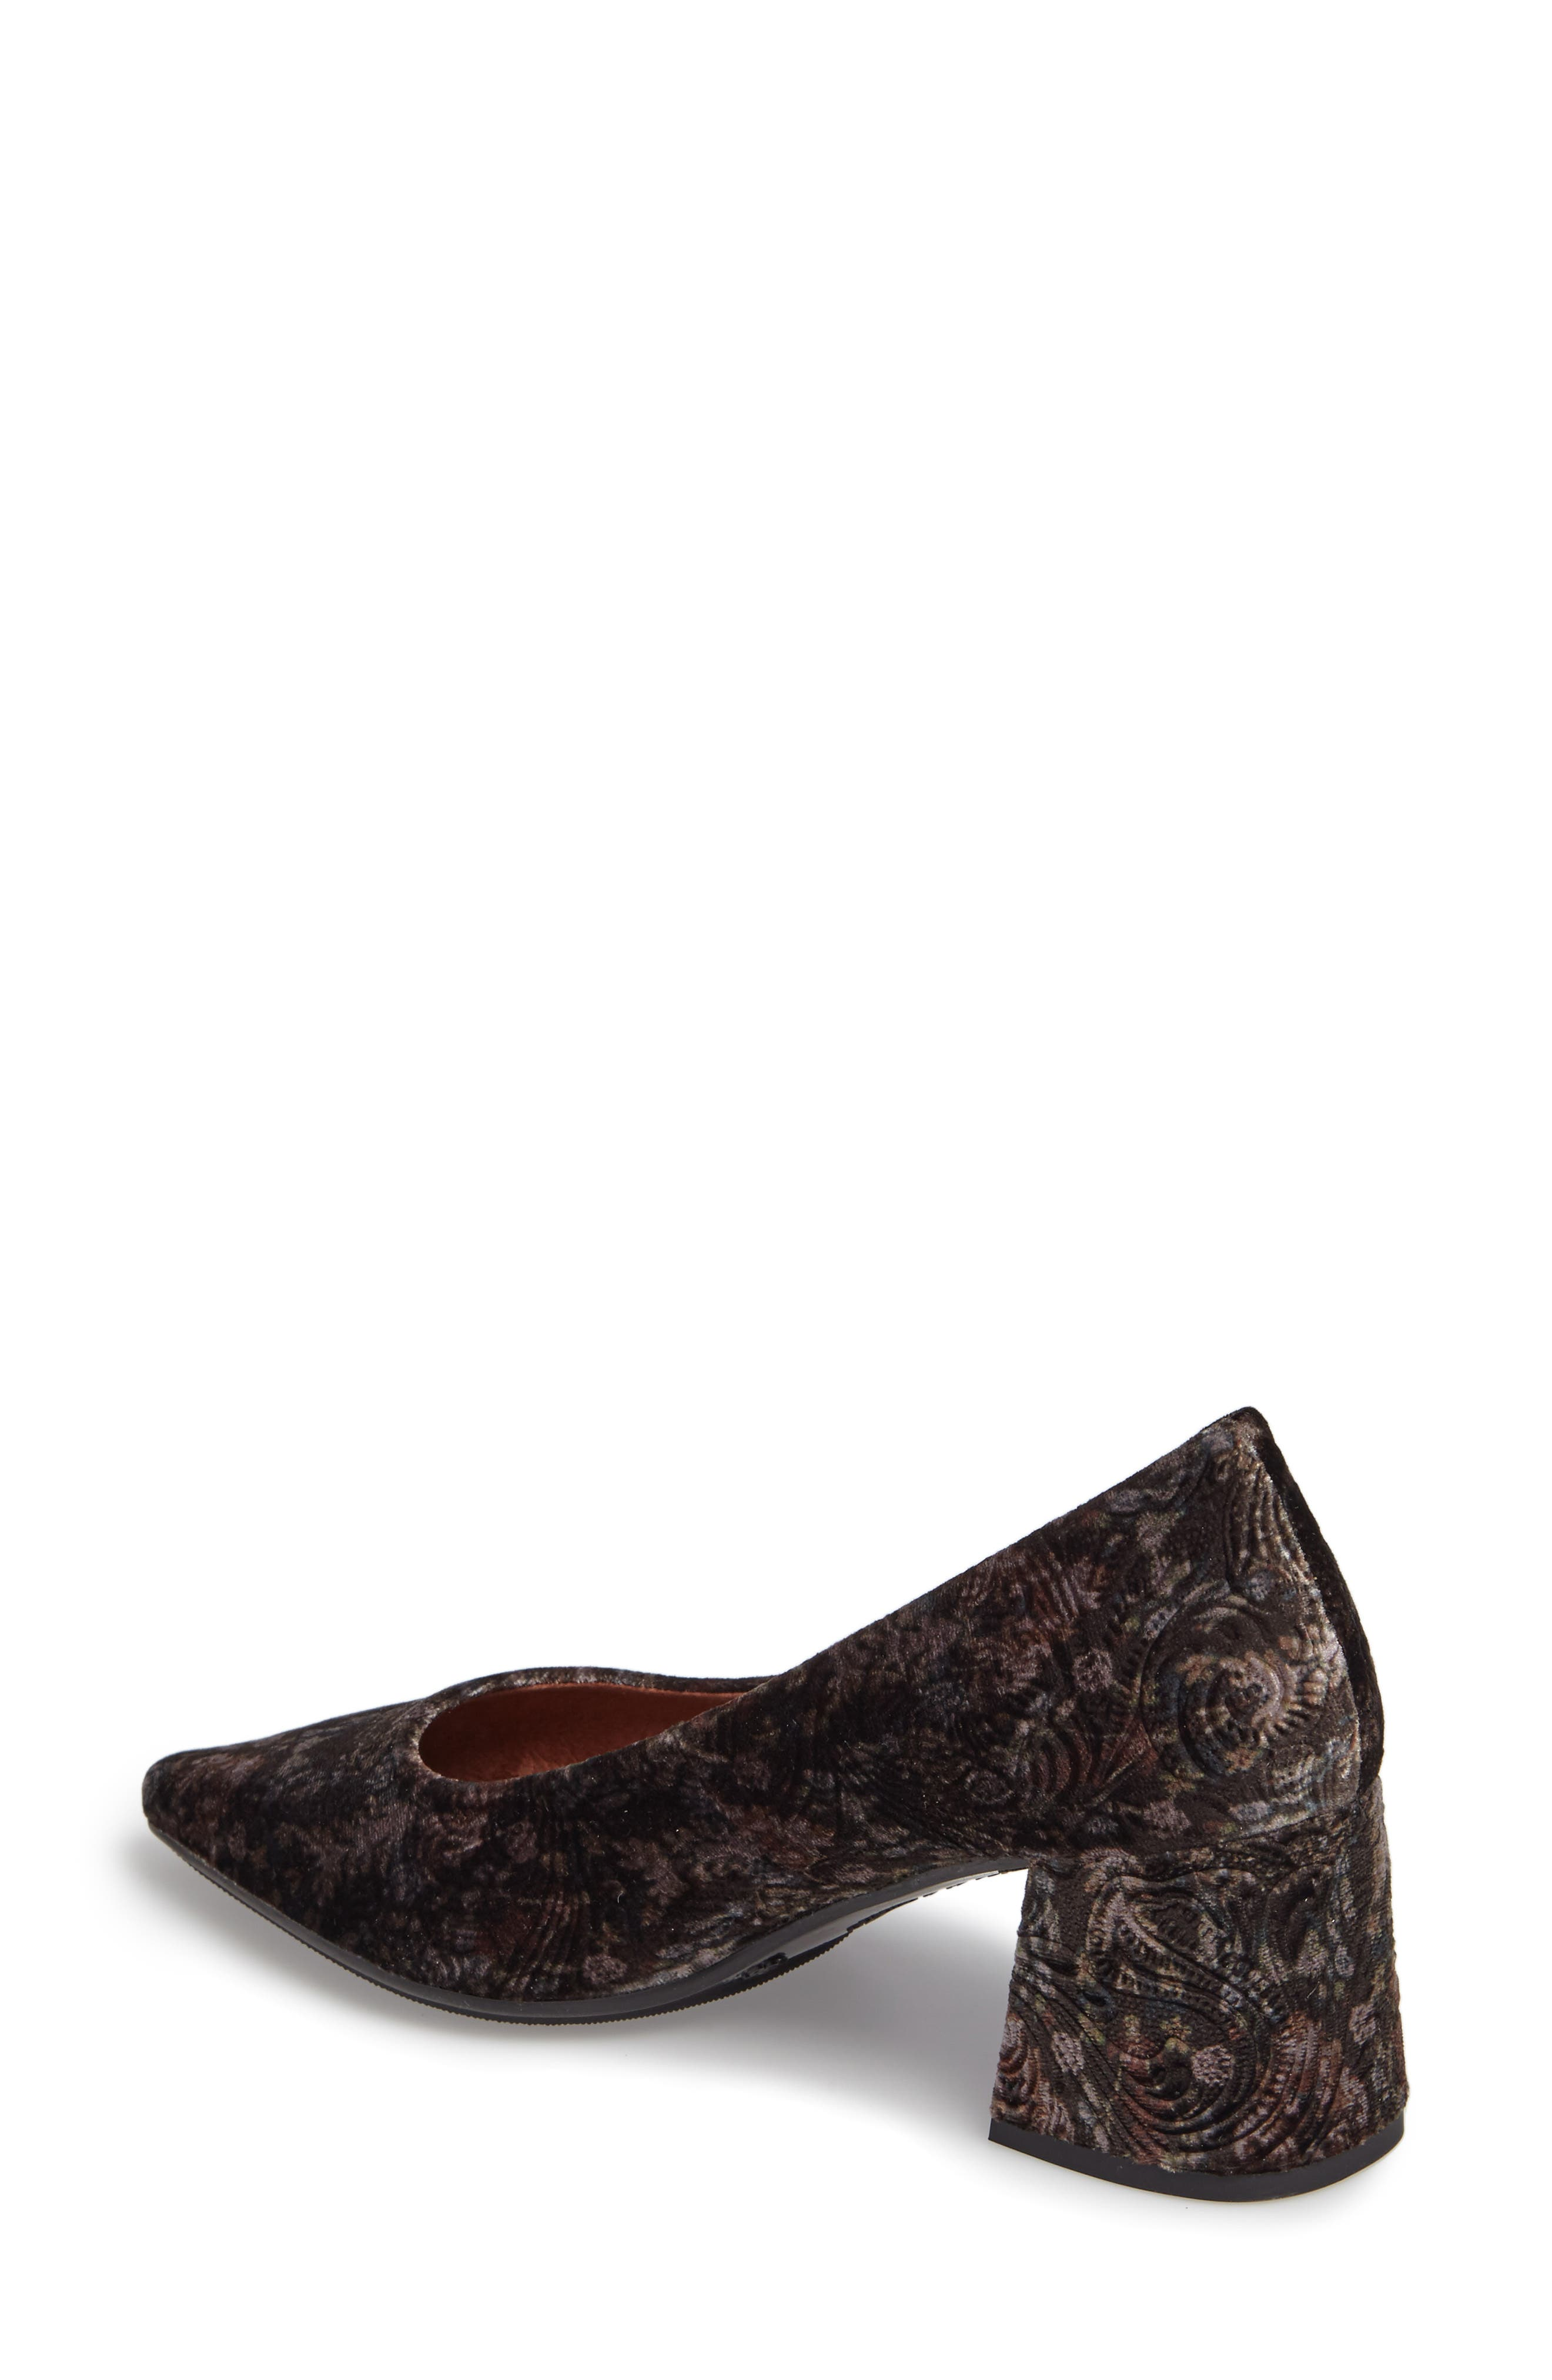 Carson Pointy Toe Pump,                             Alternate thumbnail 2, color,                             Grey Leather